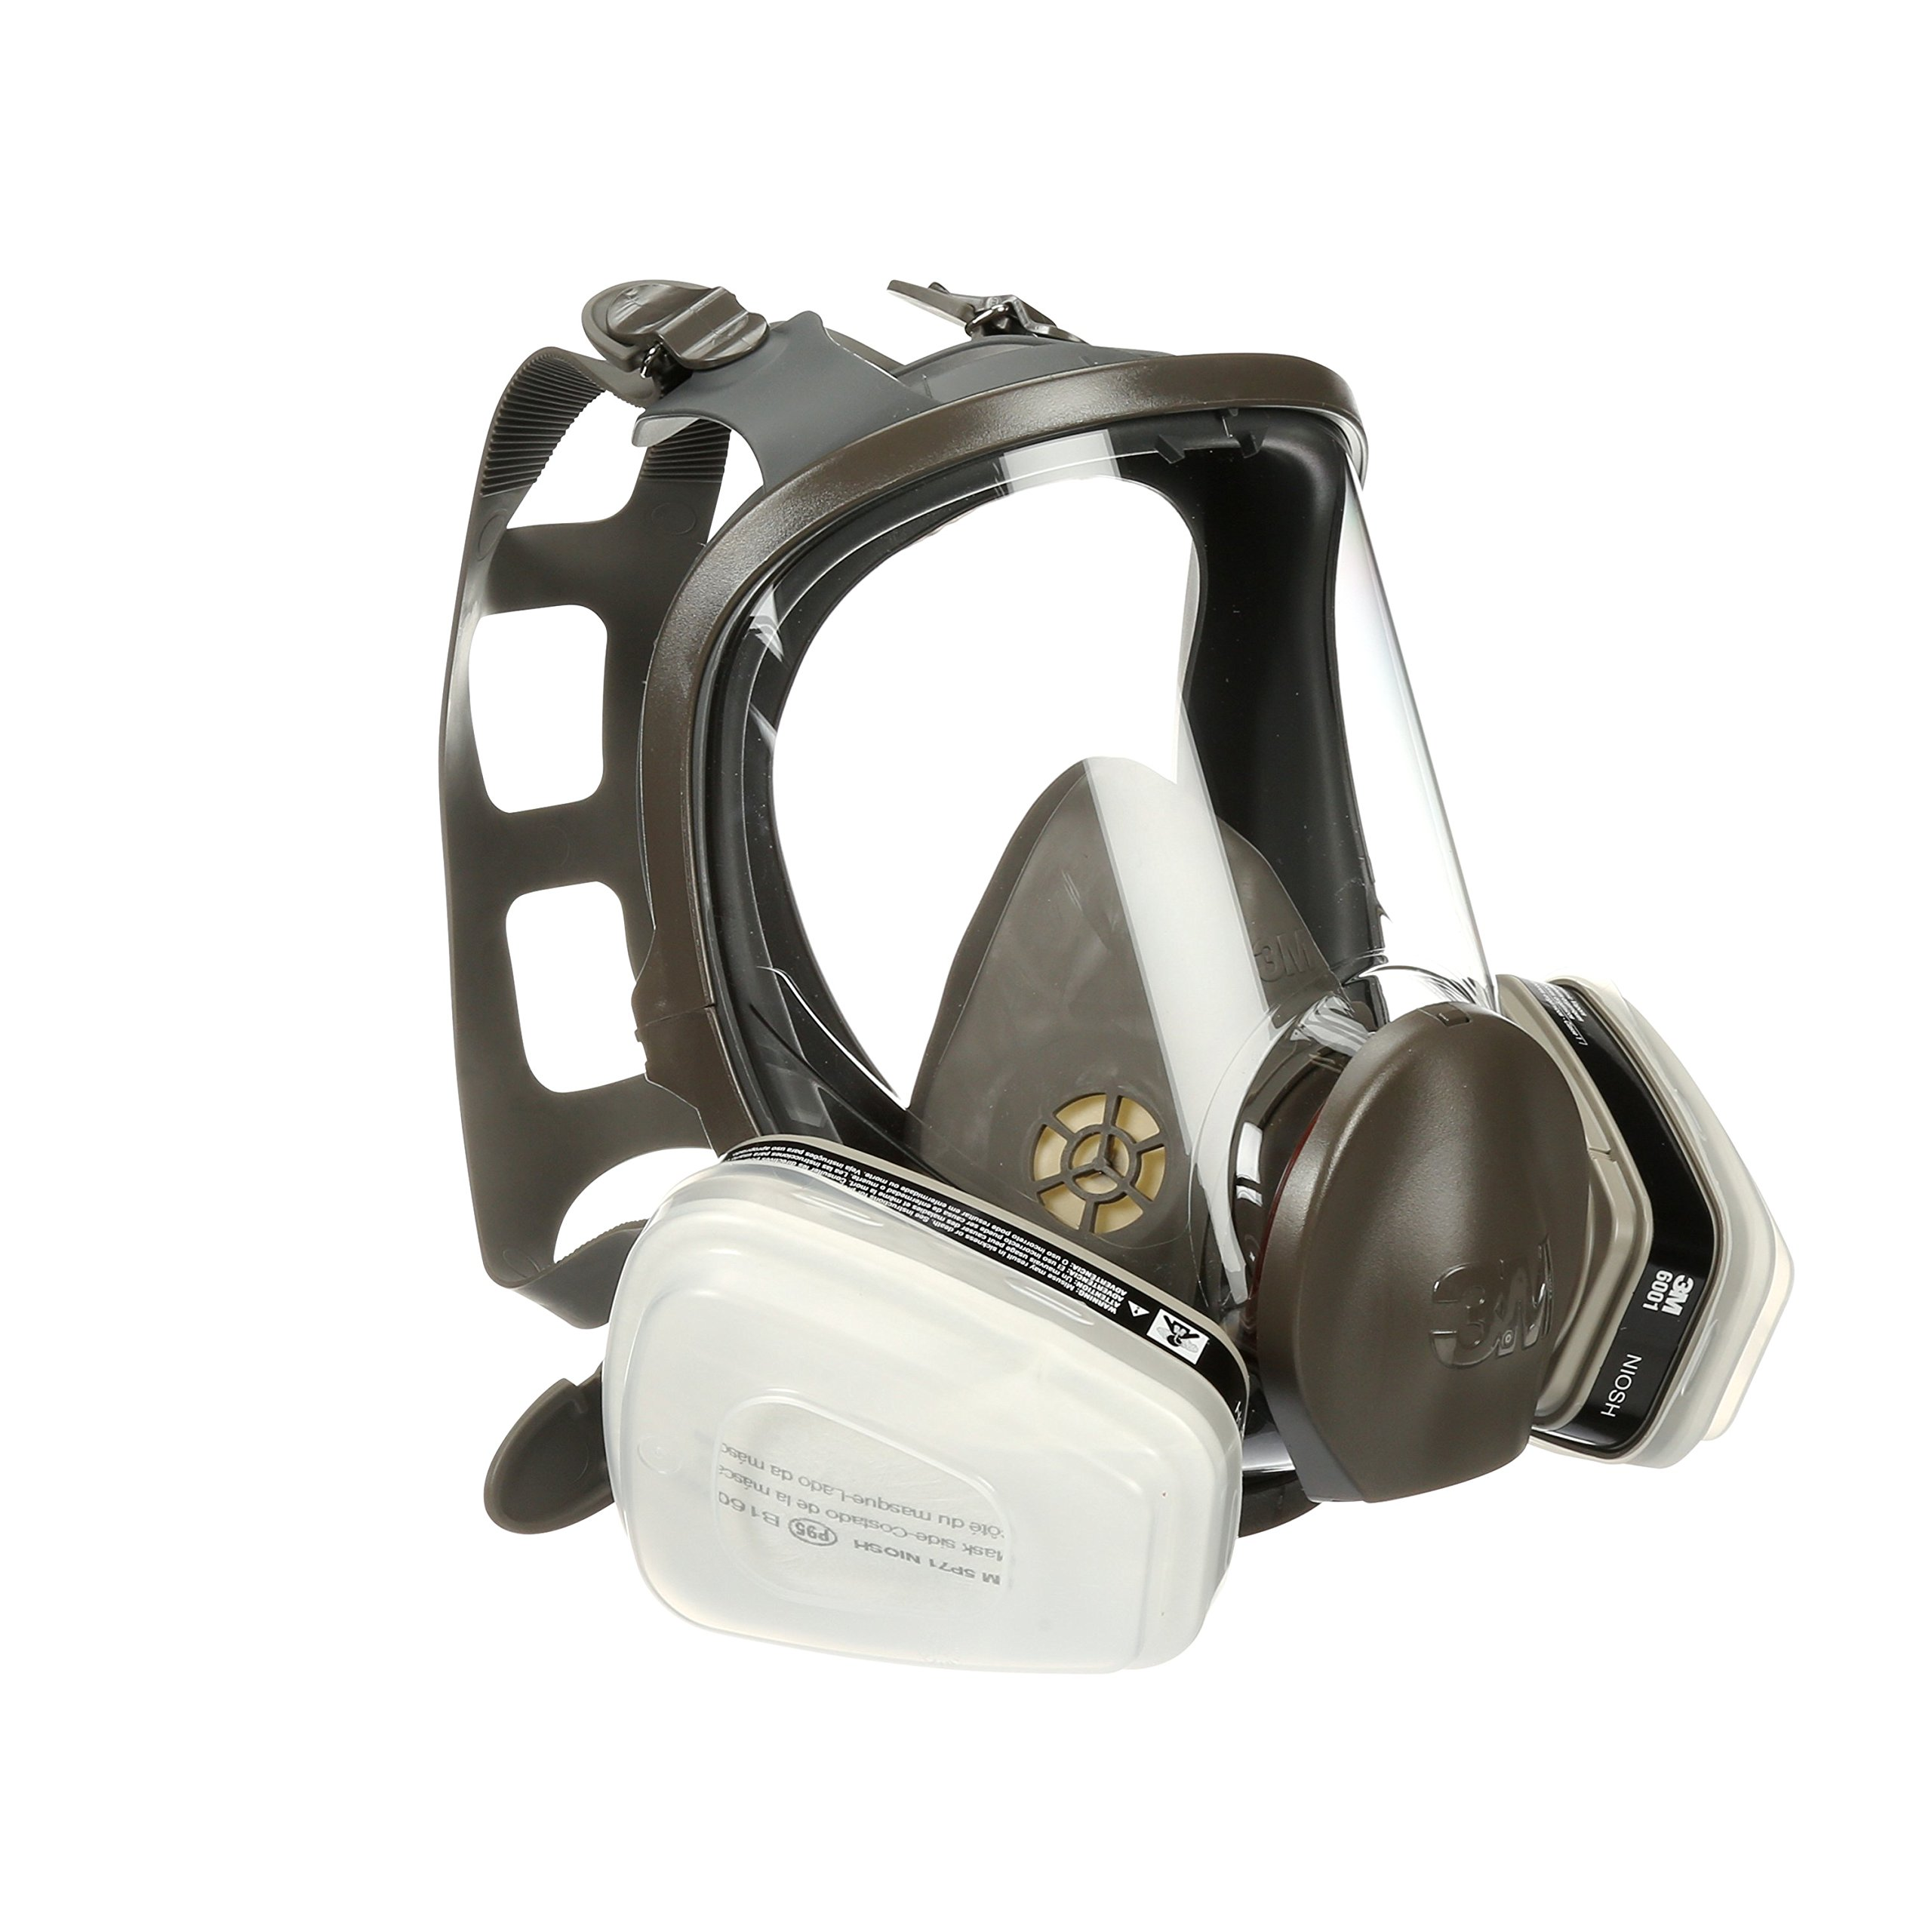 3M Full Face Paint Project Respirator, Large by 3M (Image #5)